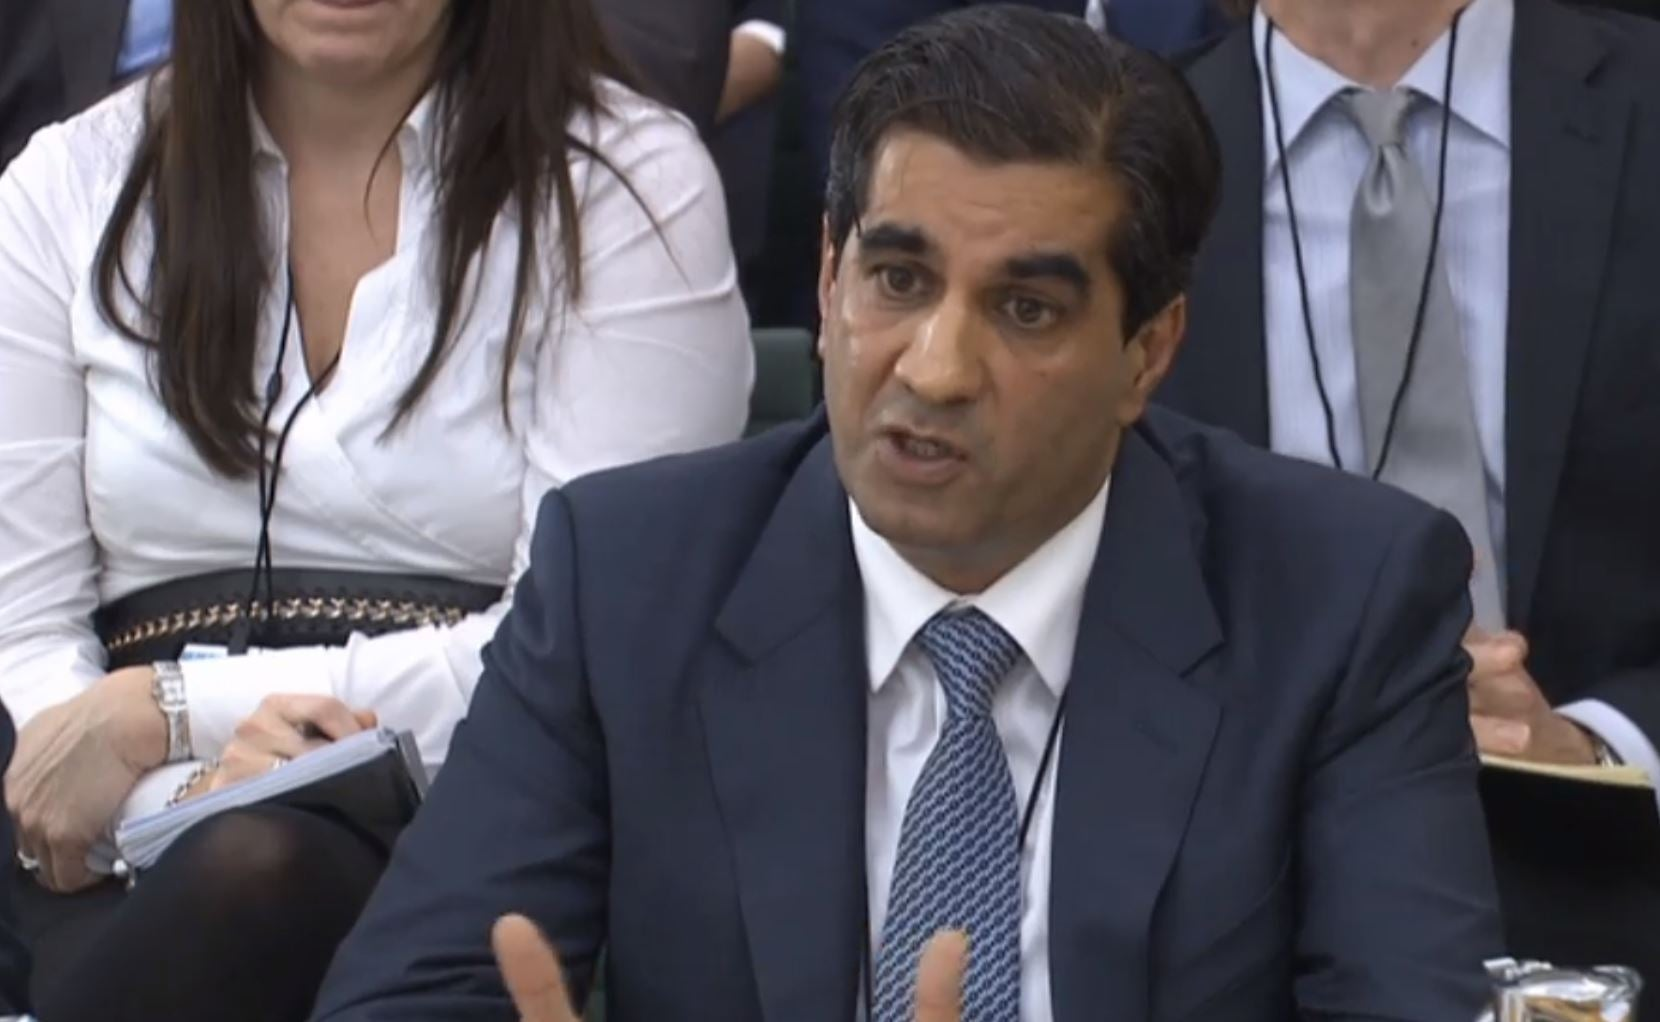 independent.co.uk - Alexander Britton - Food industry at crisis point and shortages possible, says Ranjit Singh Boparan